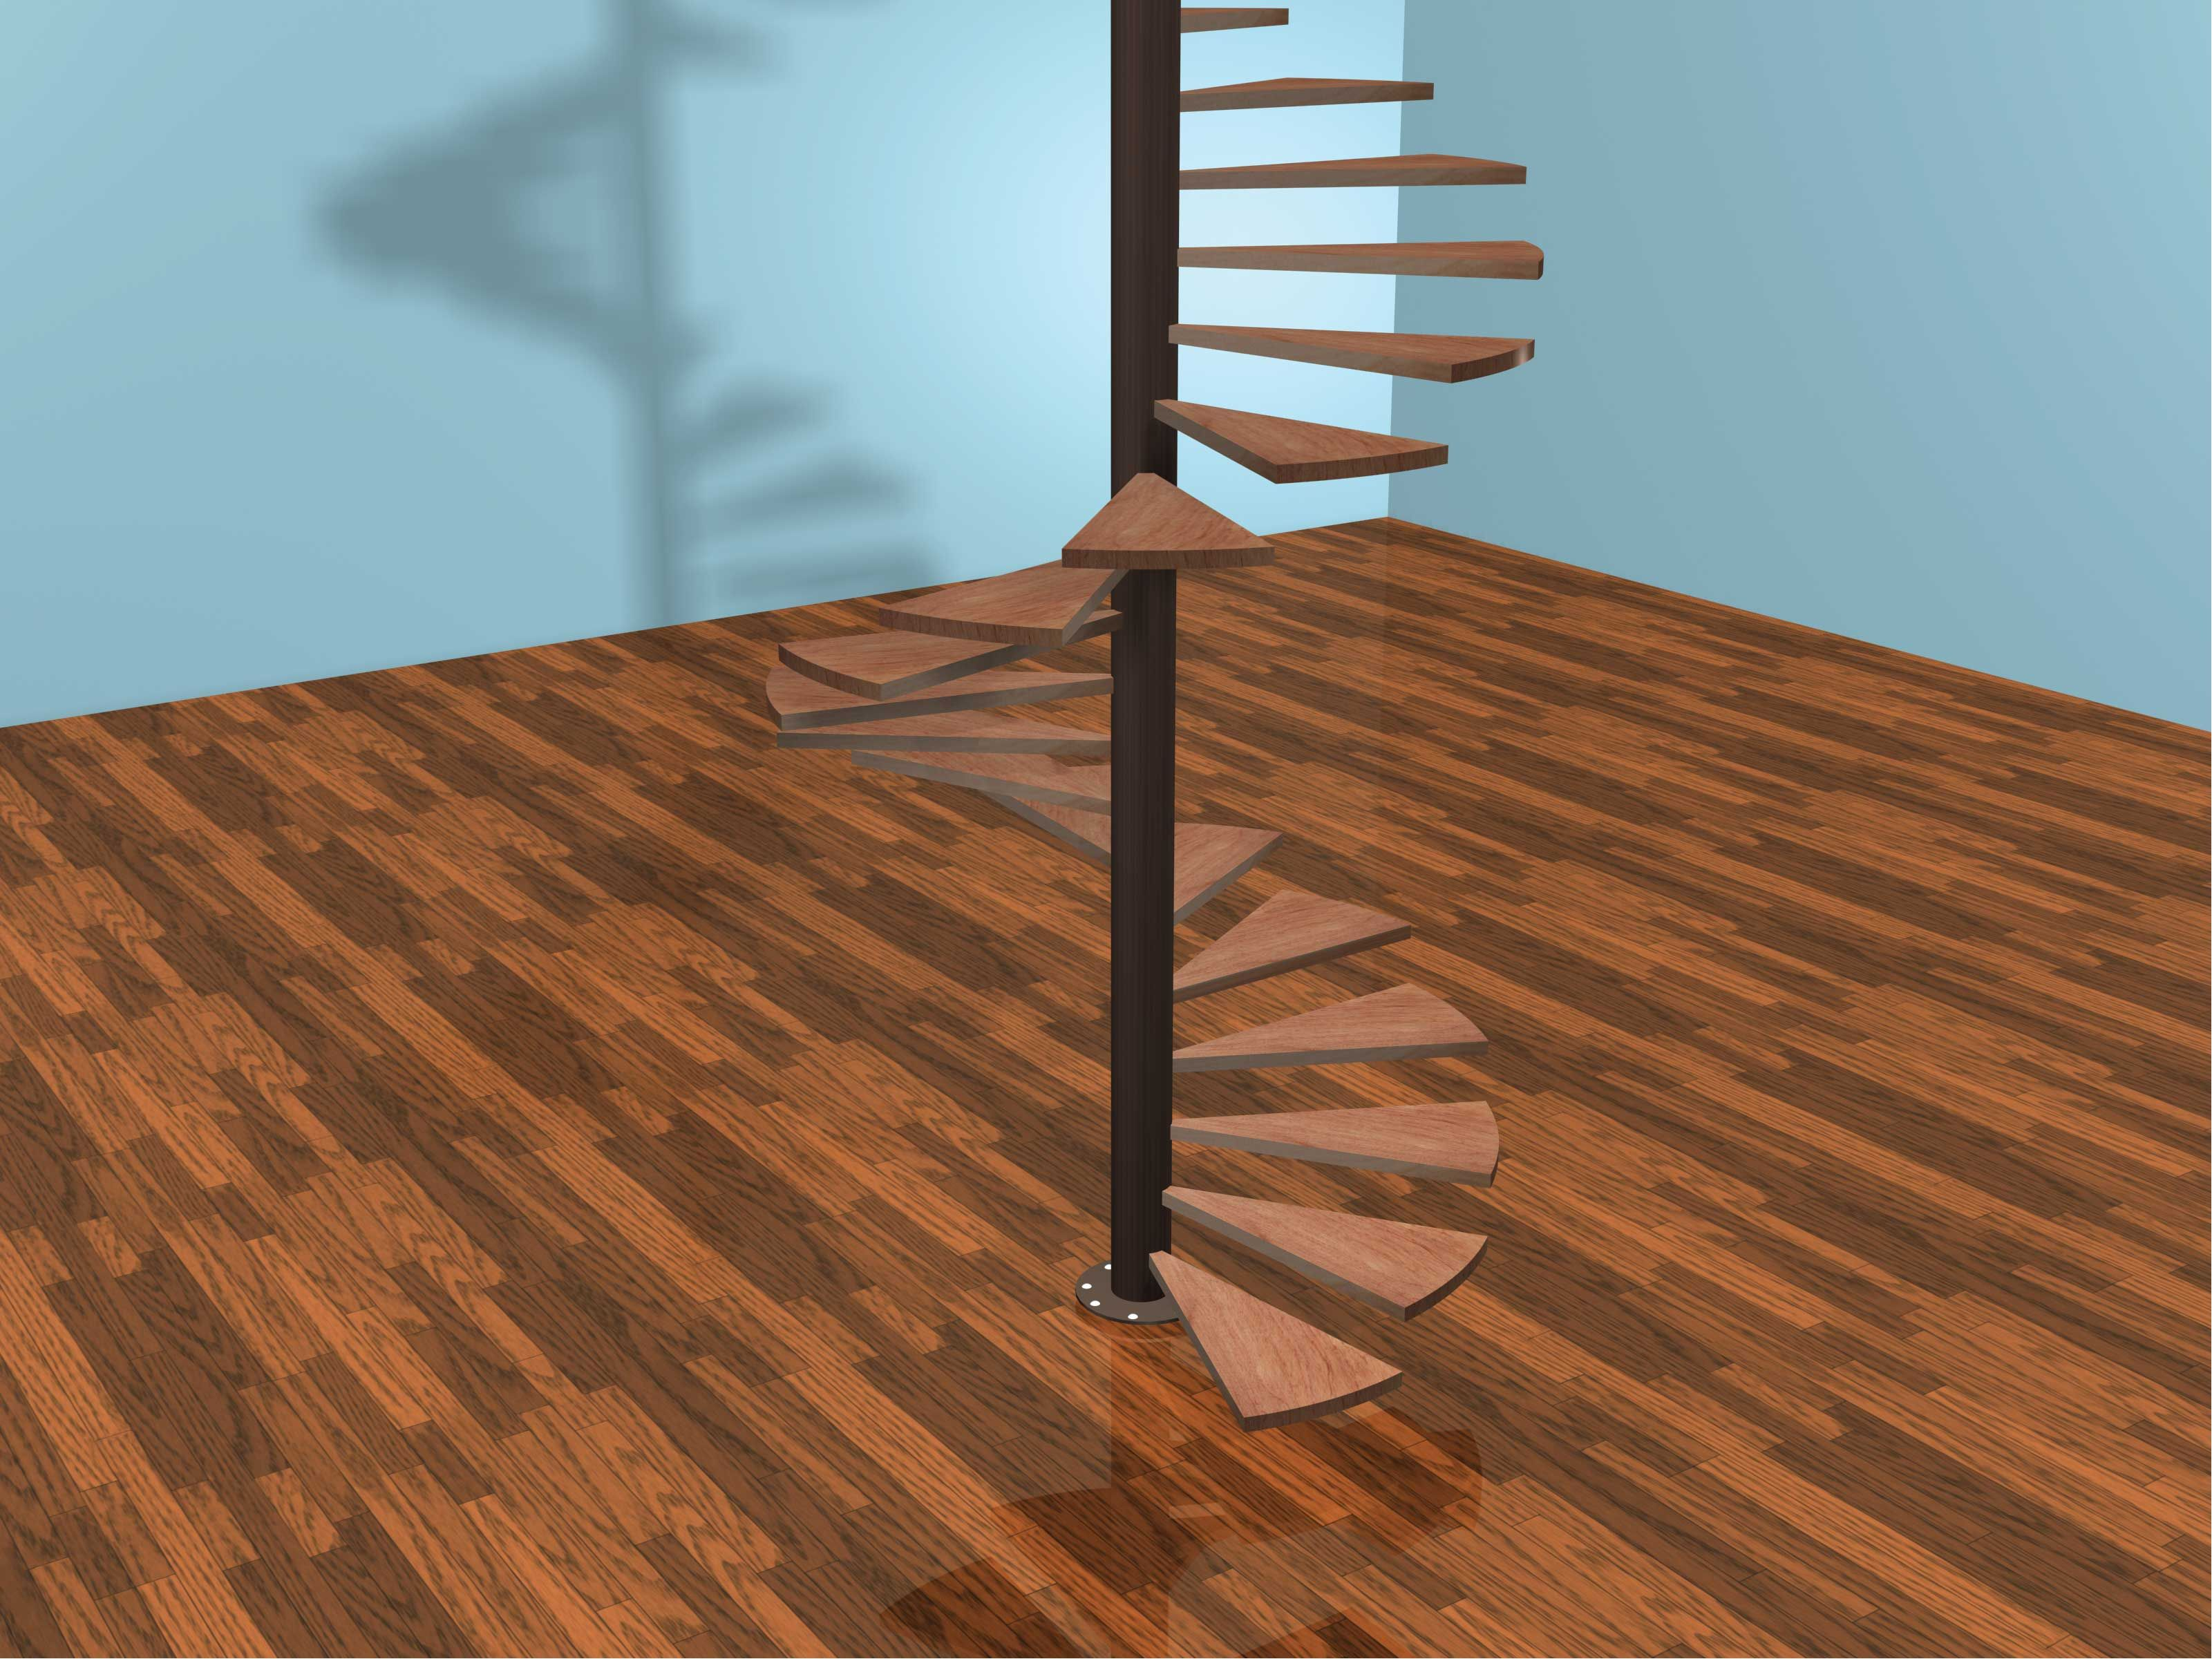 A Spiral Staircase Can Add An Element Of Unusualness Or